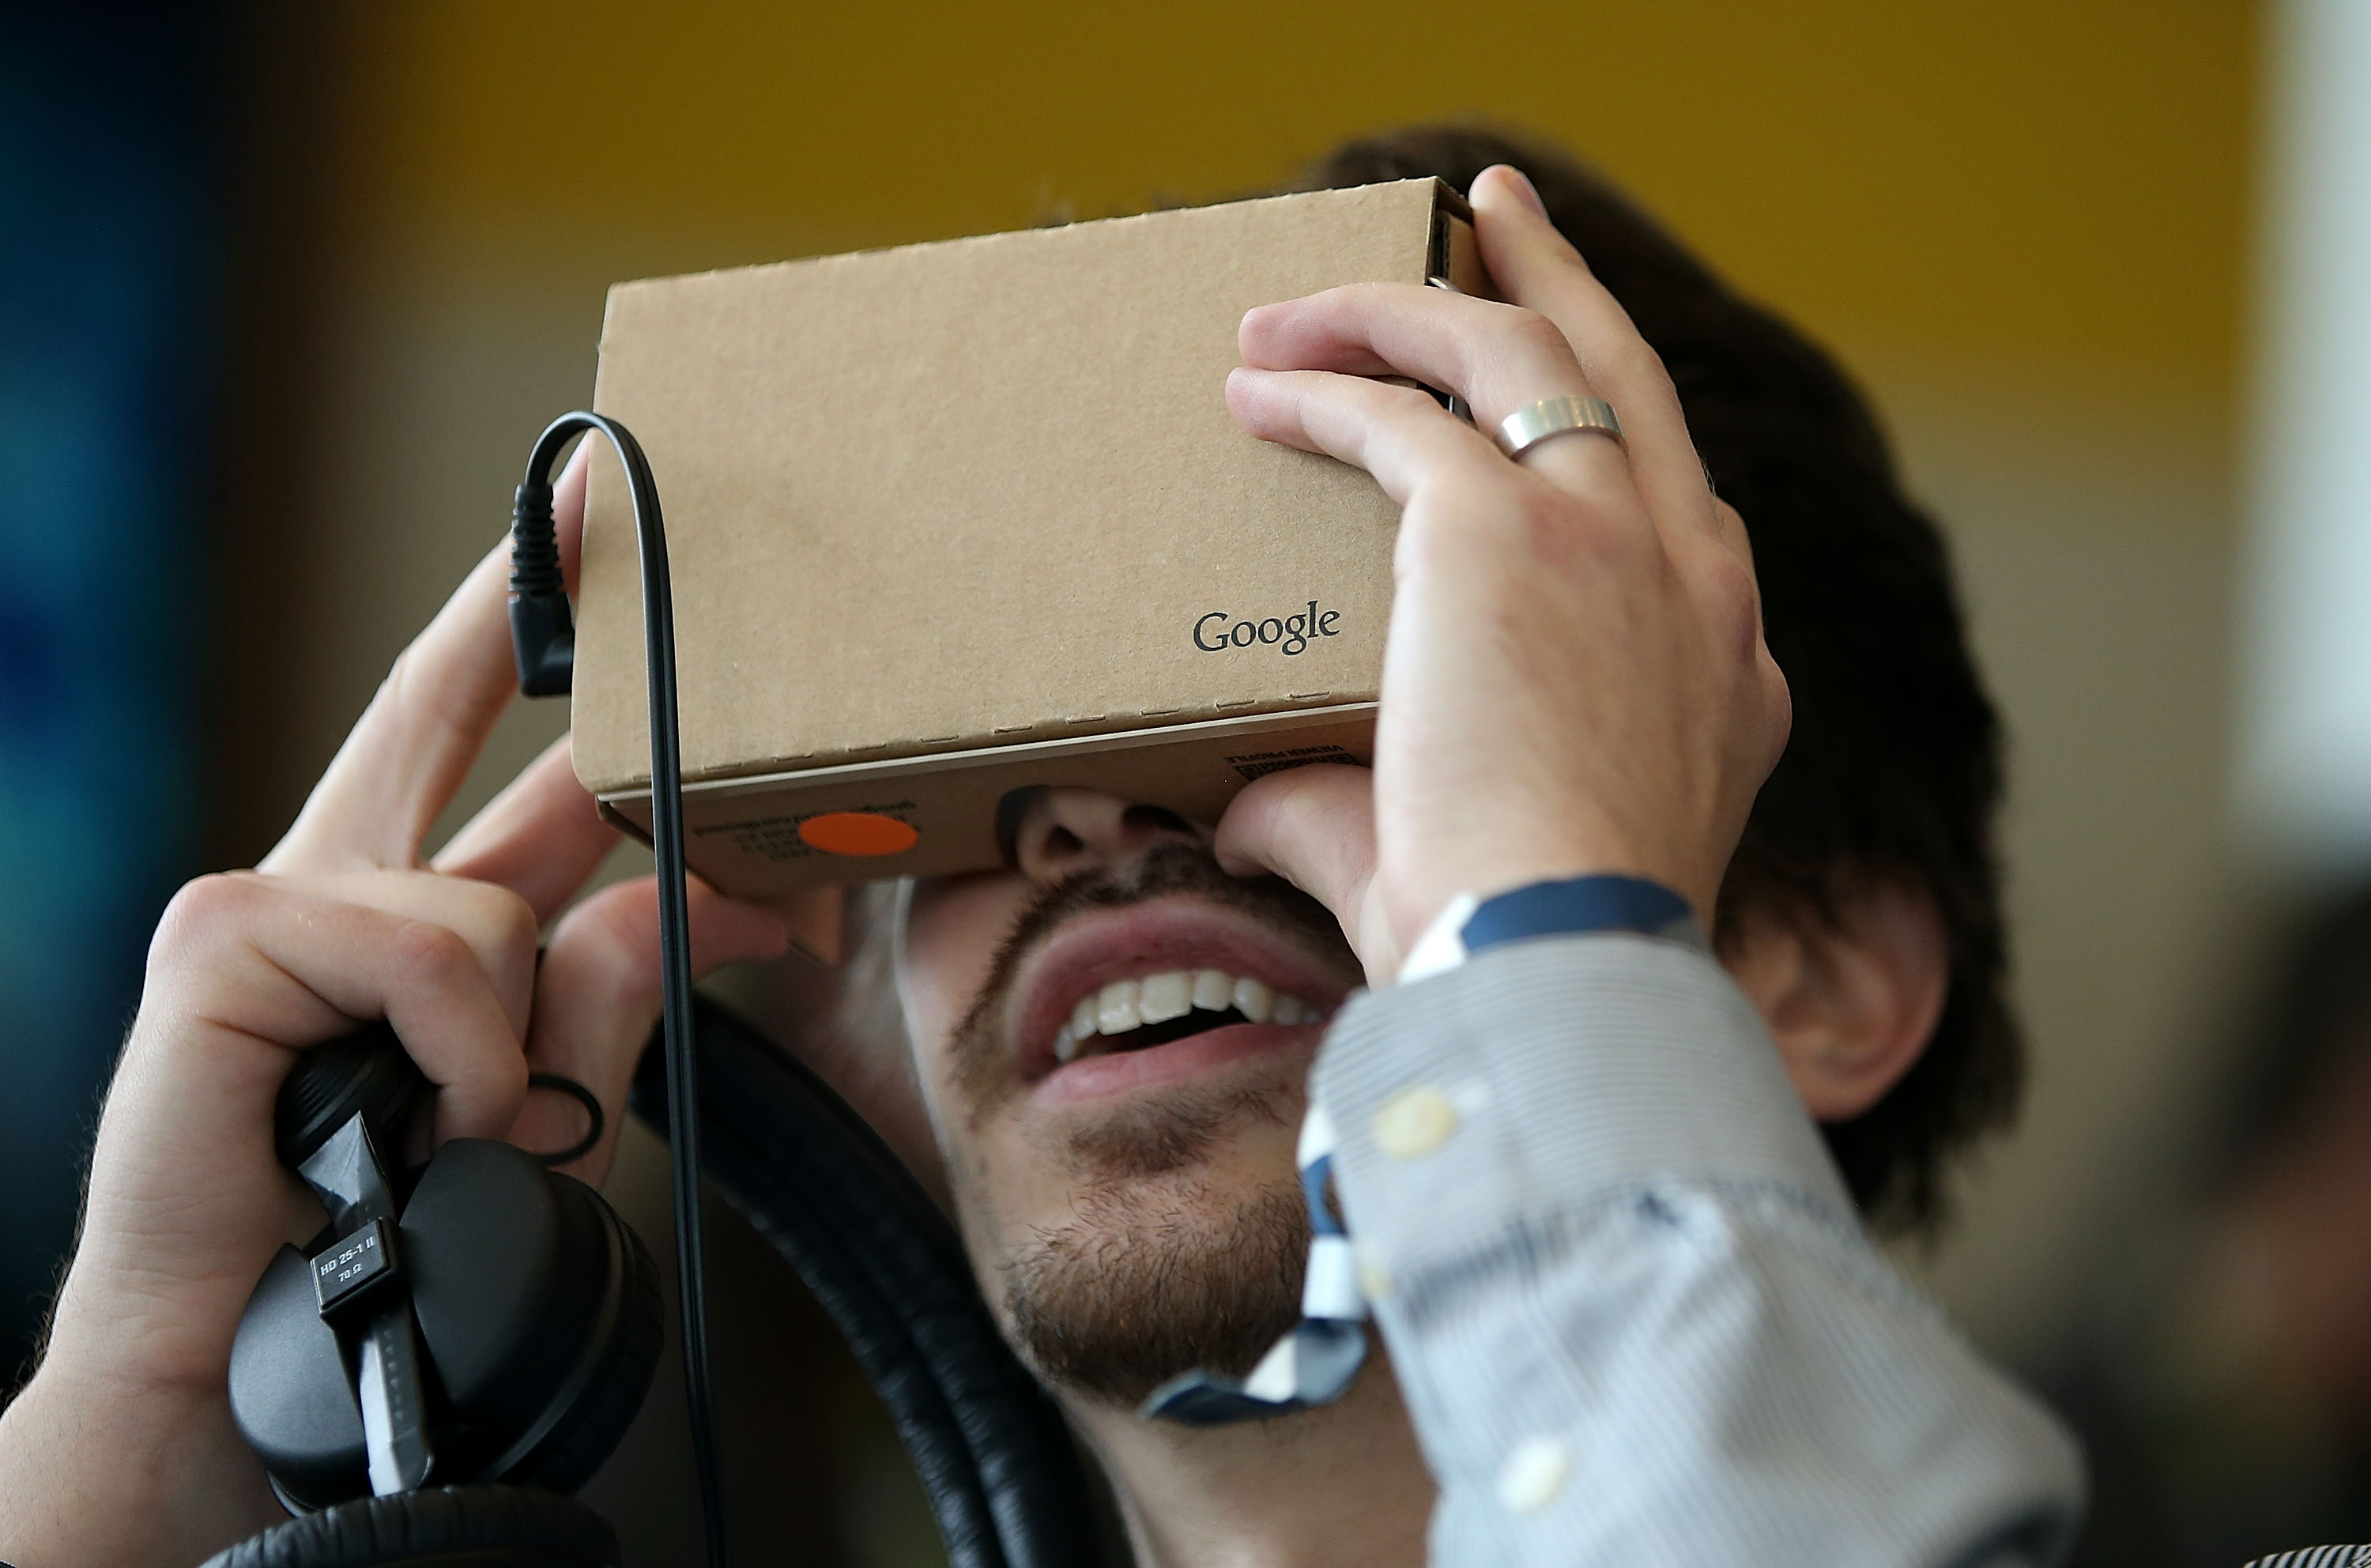 An attendee inspects Google Cardboard during the 2015 Google I/O conference on May 28, 2015 in San Francisco, Calif.